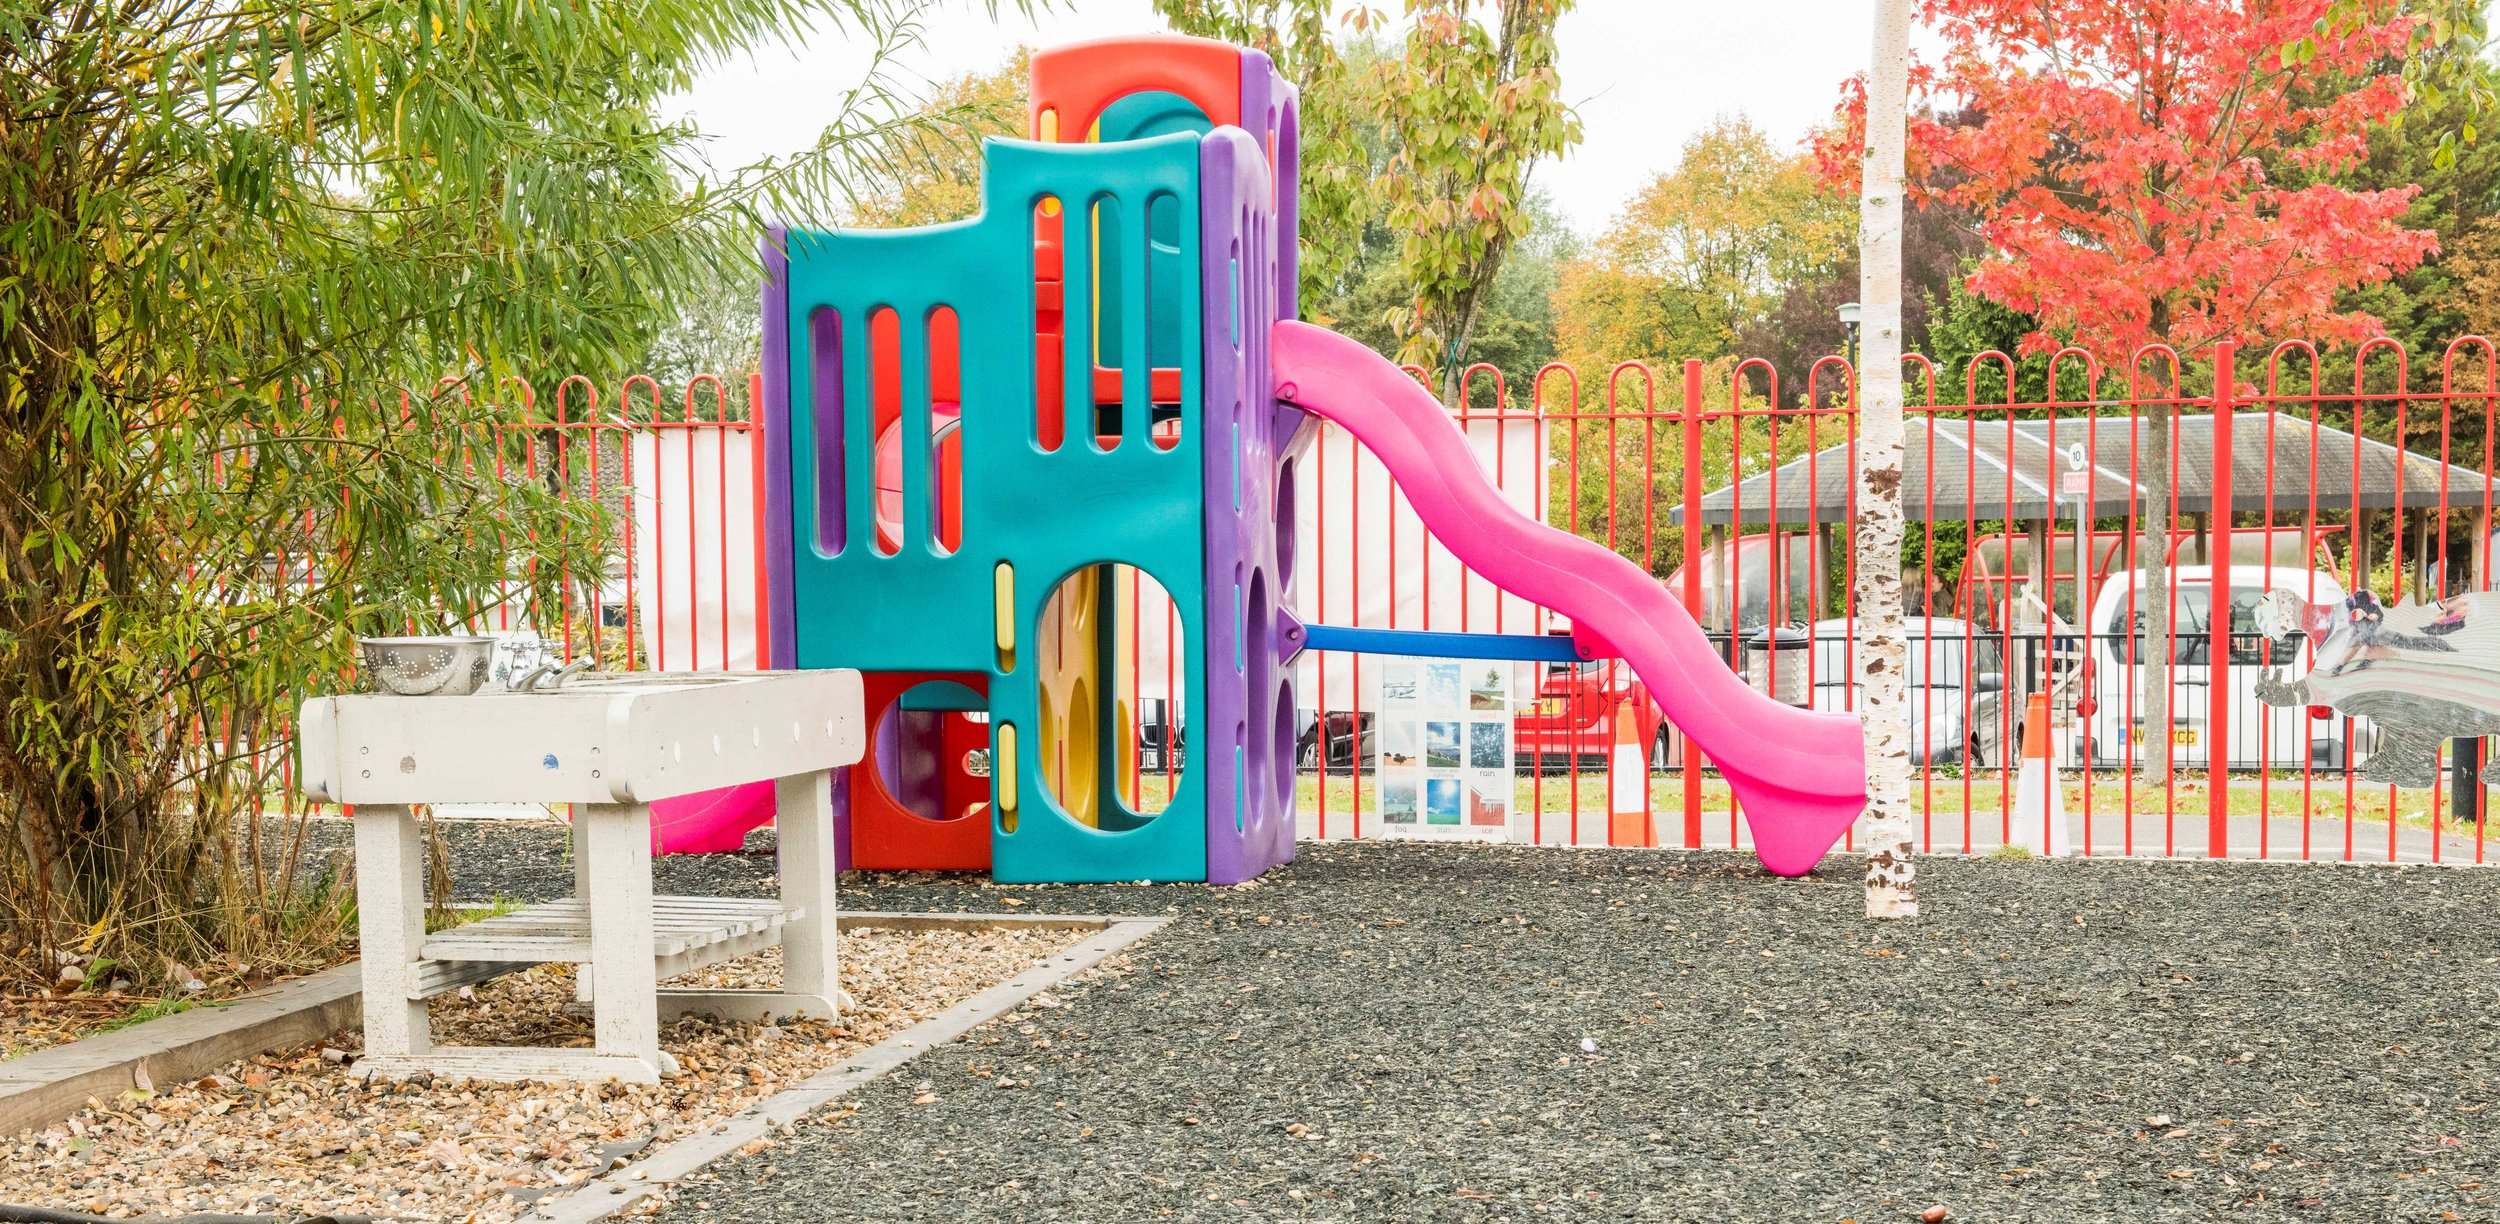 A happy place. - Read why so many parents think Little Acorns is special.